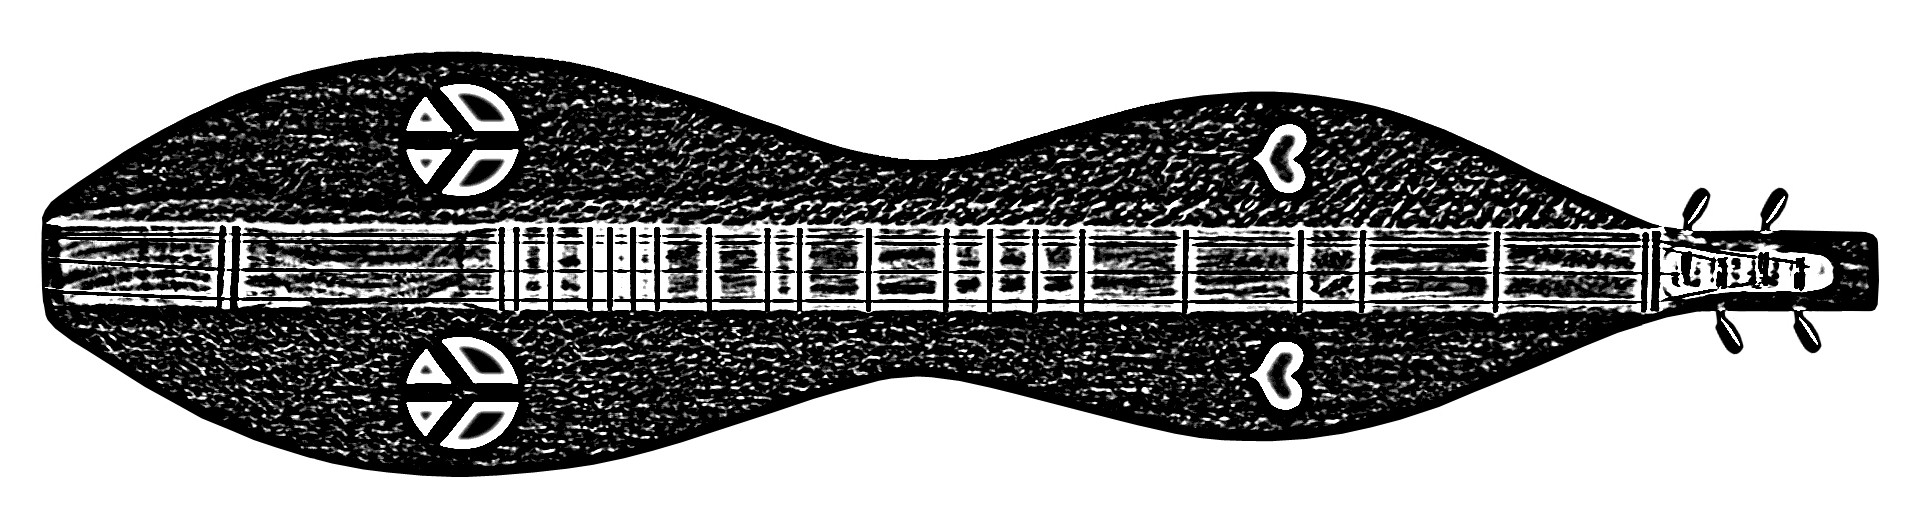 dulcimer for jam blurb